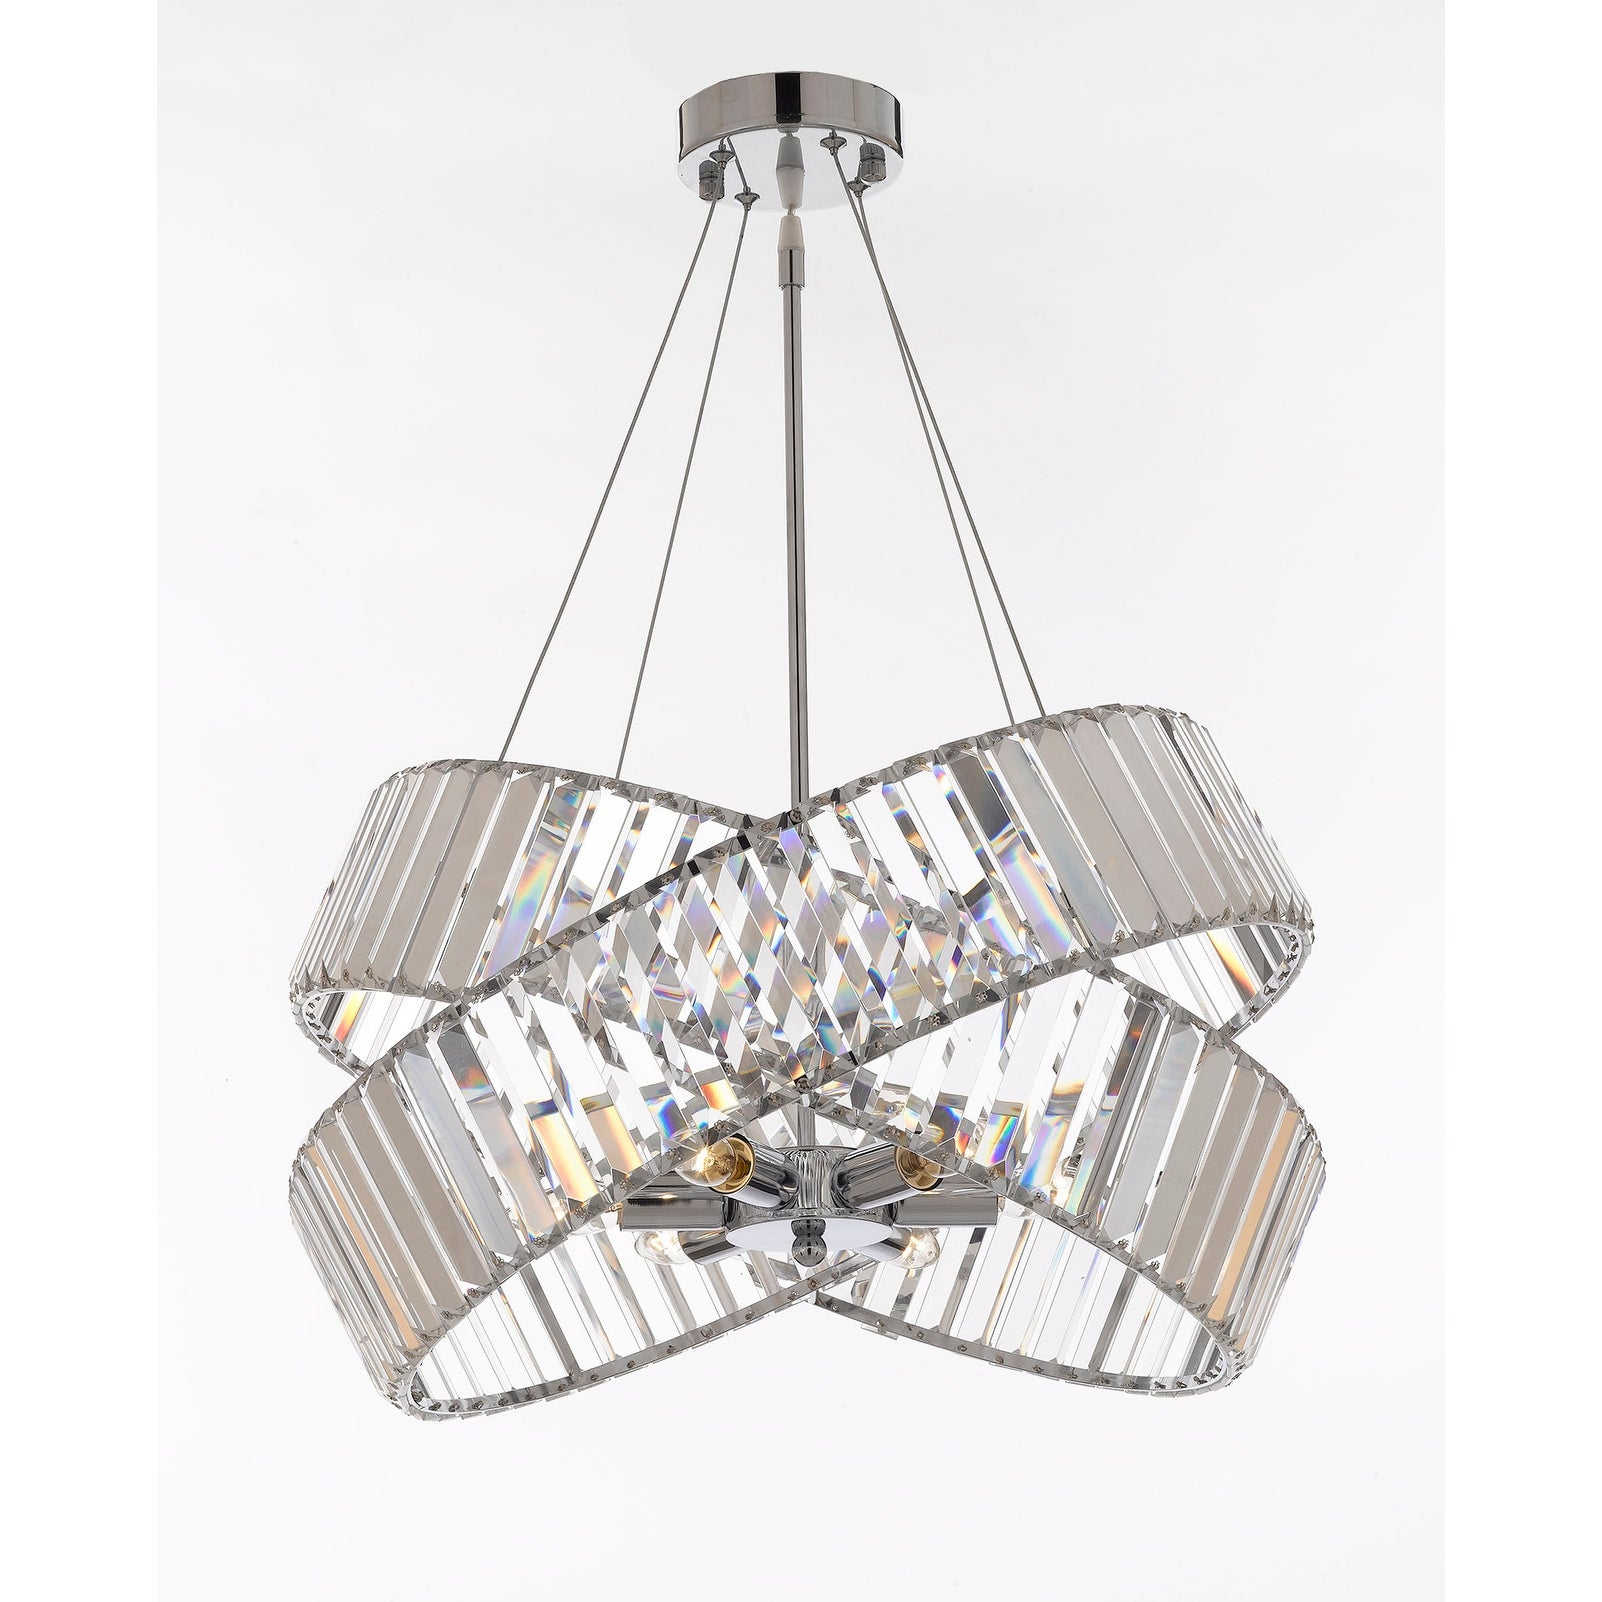 light collection plc sn ribbon products chandelier